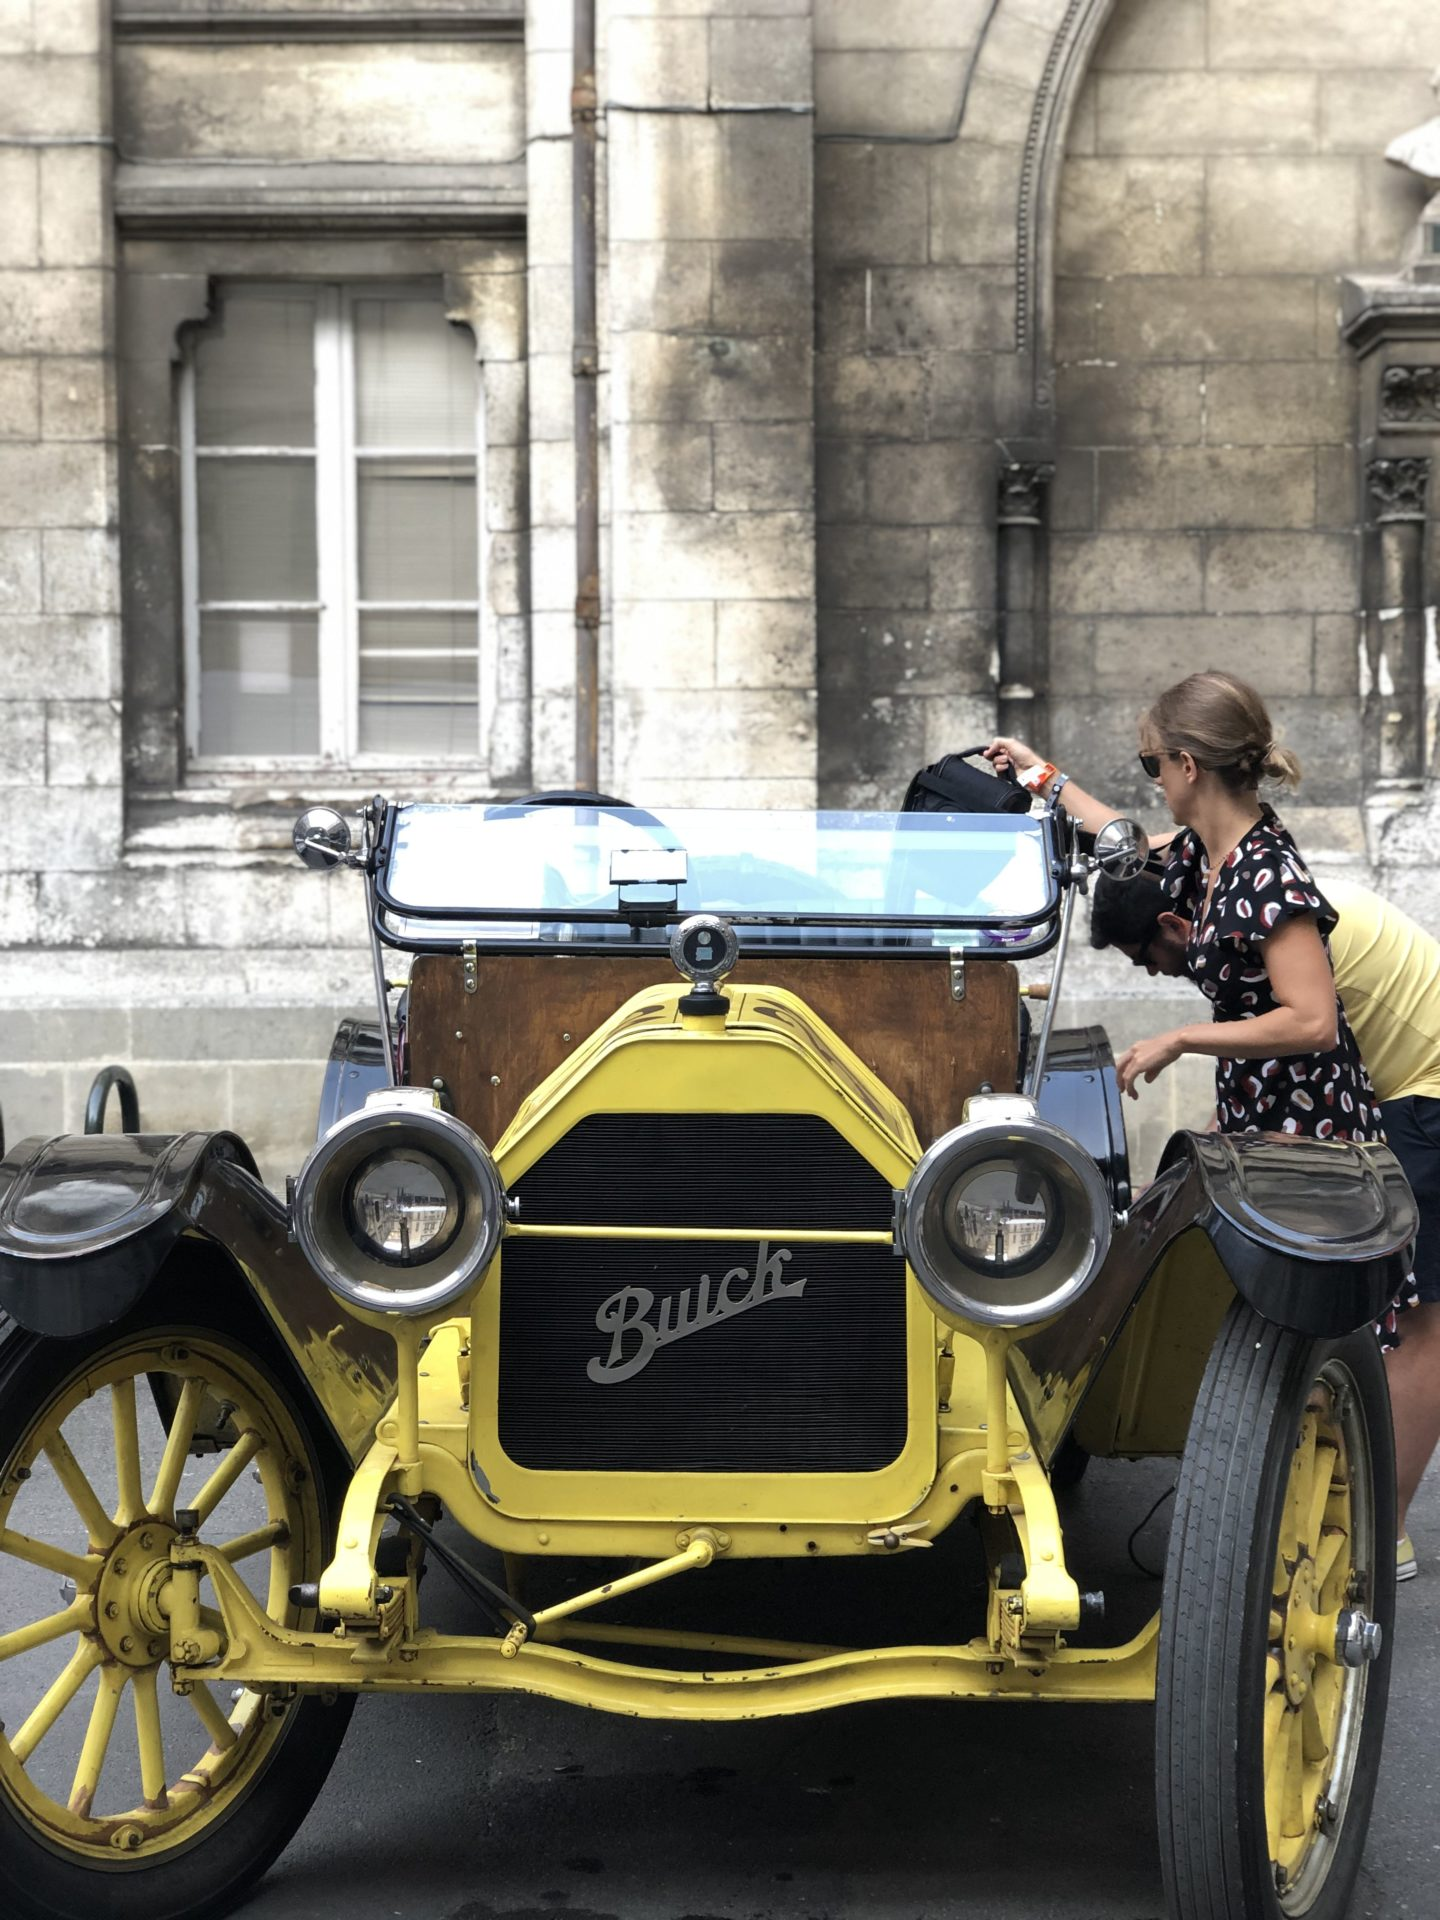 roadrugcars road rug cars circuit des remparts angouleme buick front